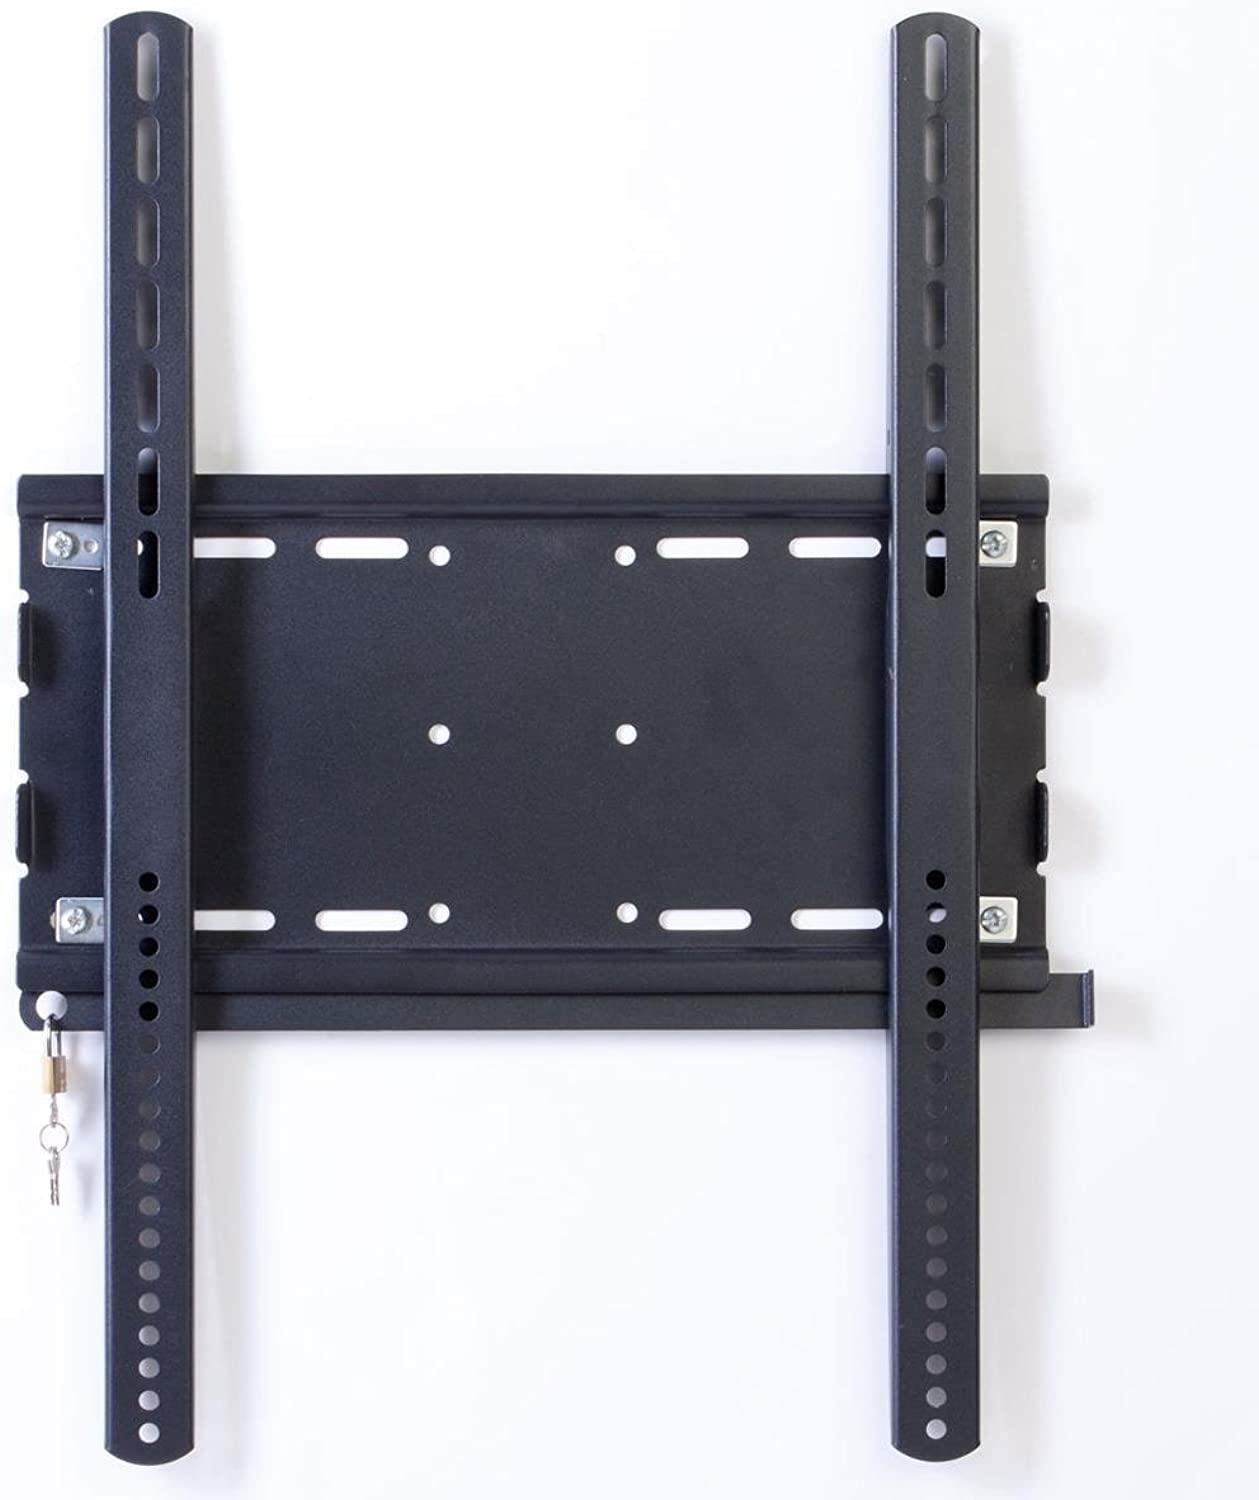 Displays2go LMWM640FBK 37-70 Inches Stationary TV Wall Mount for greenically-Oriented Monitors